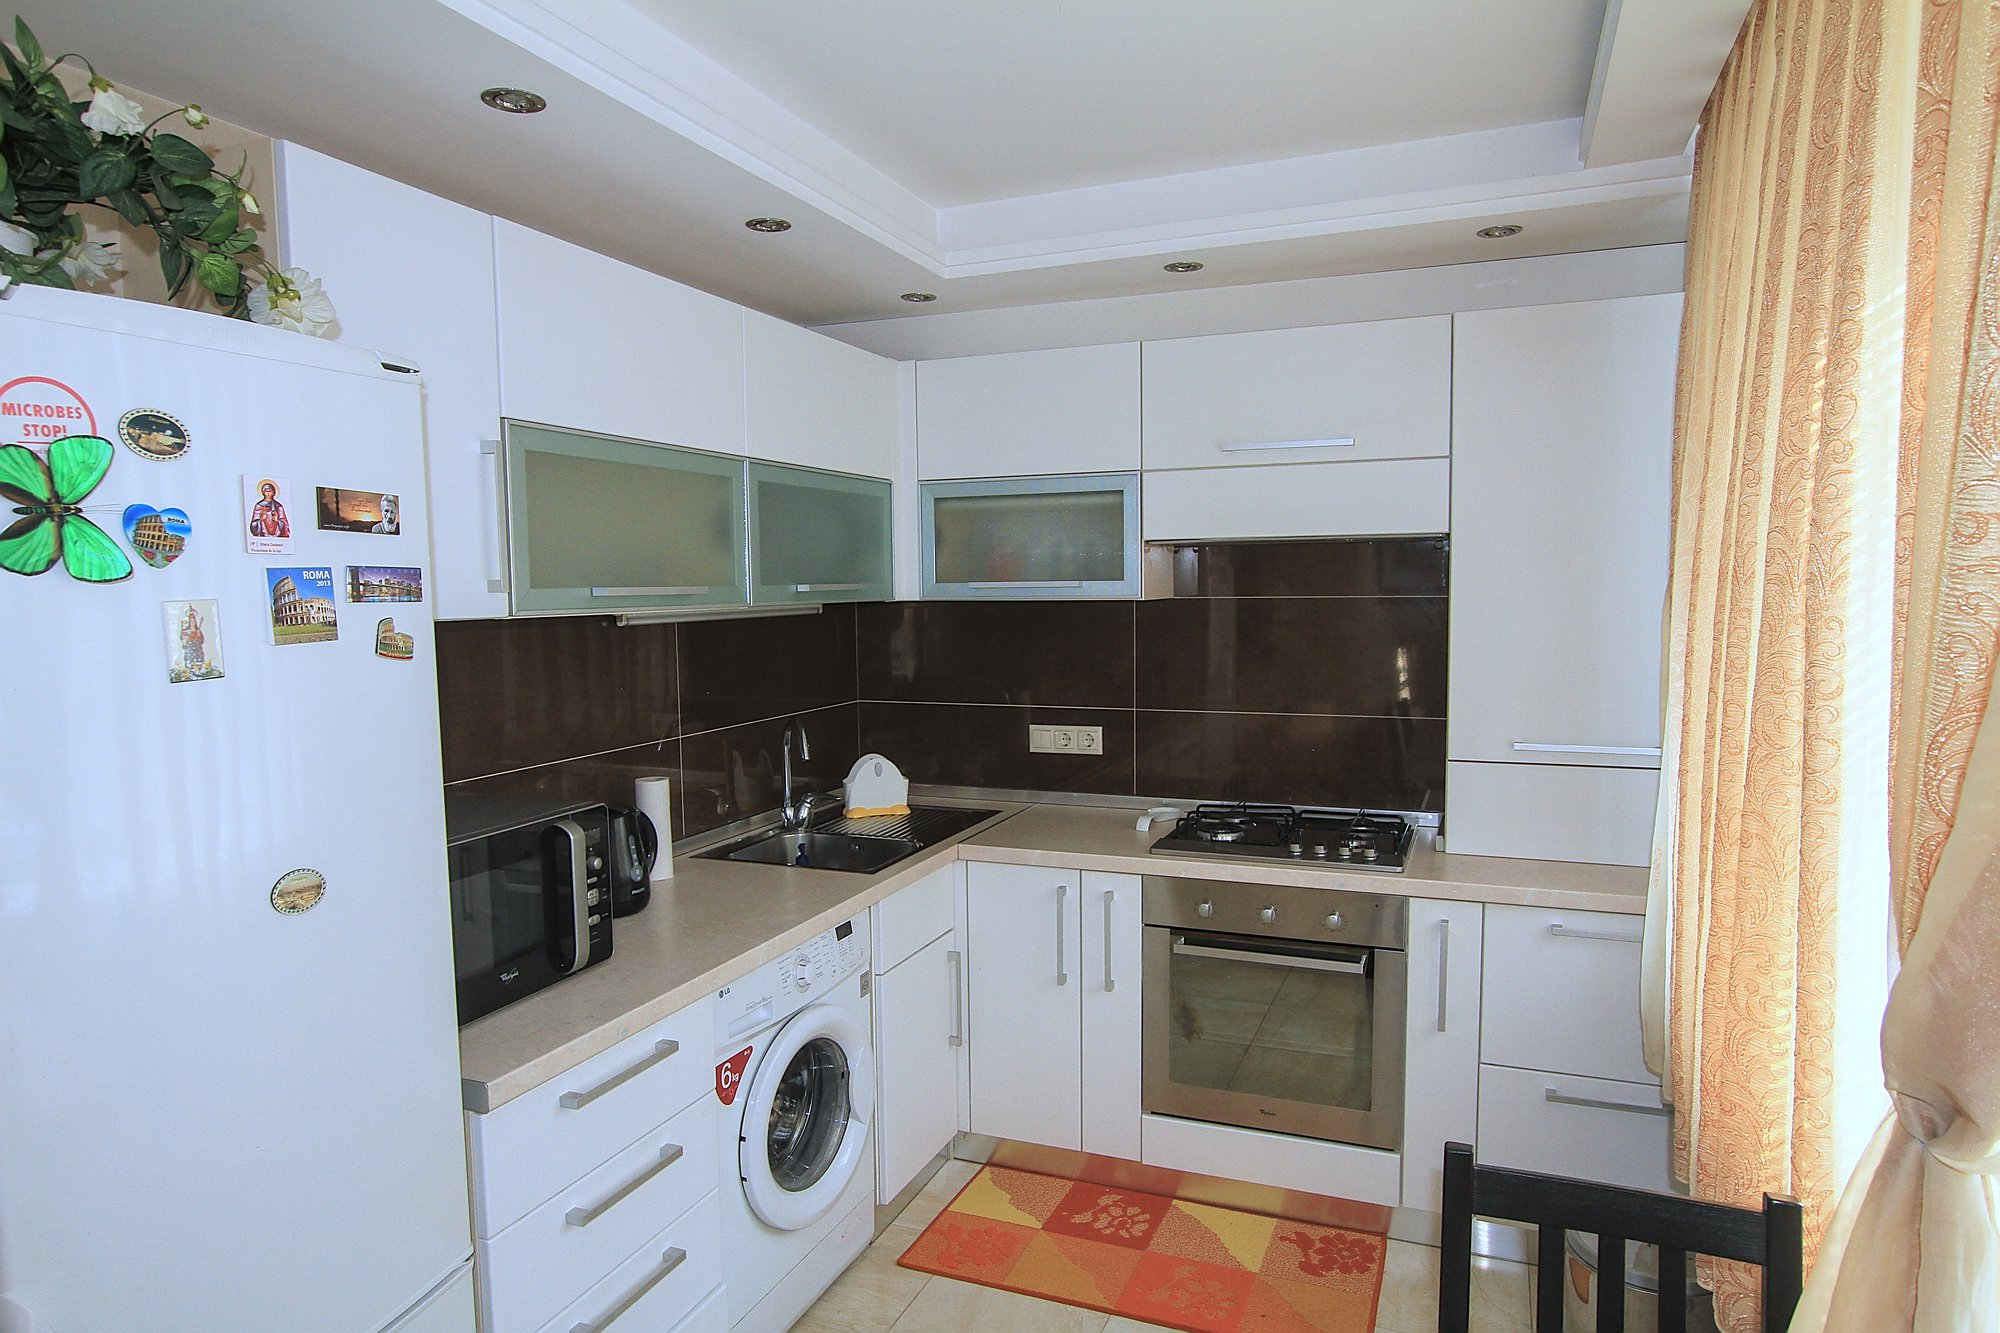 A-40-3-room-apartment-for-rent-in-Chisinau-Botanica_05.jpg